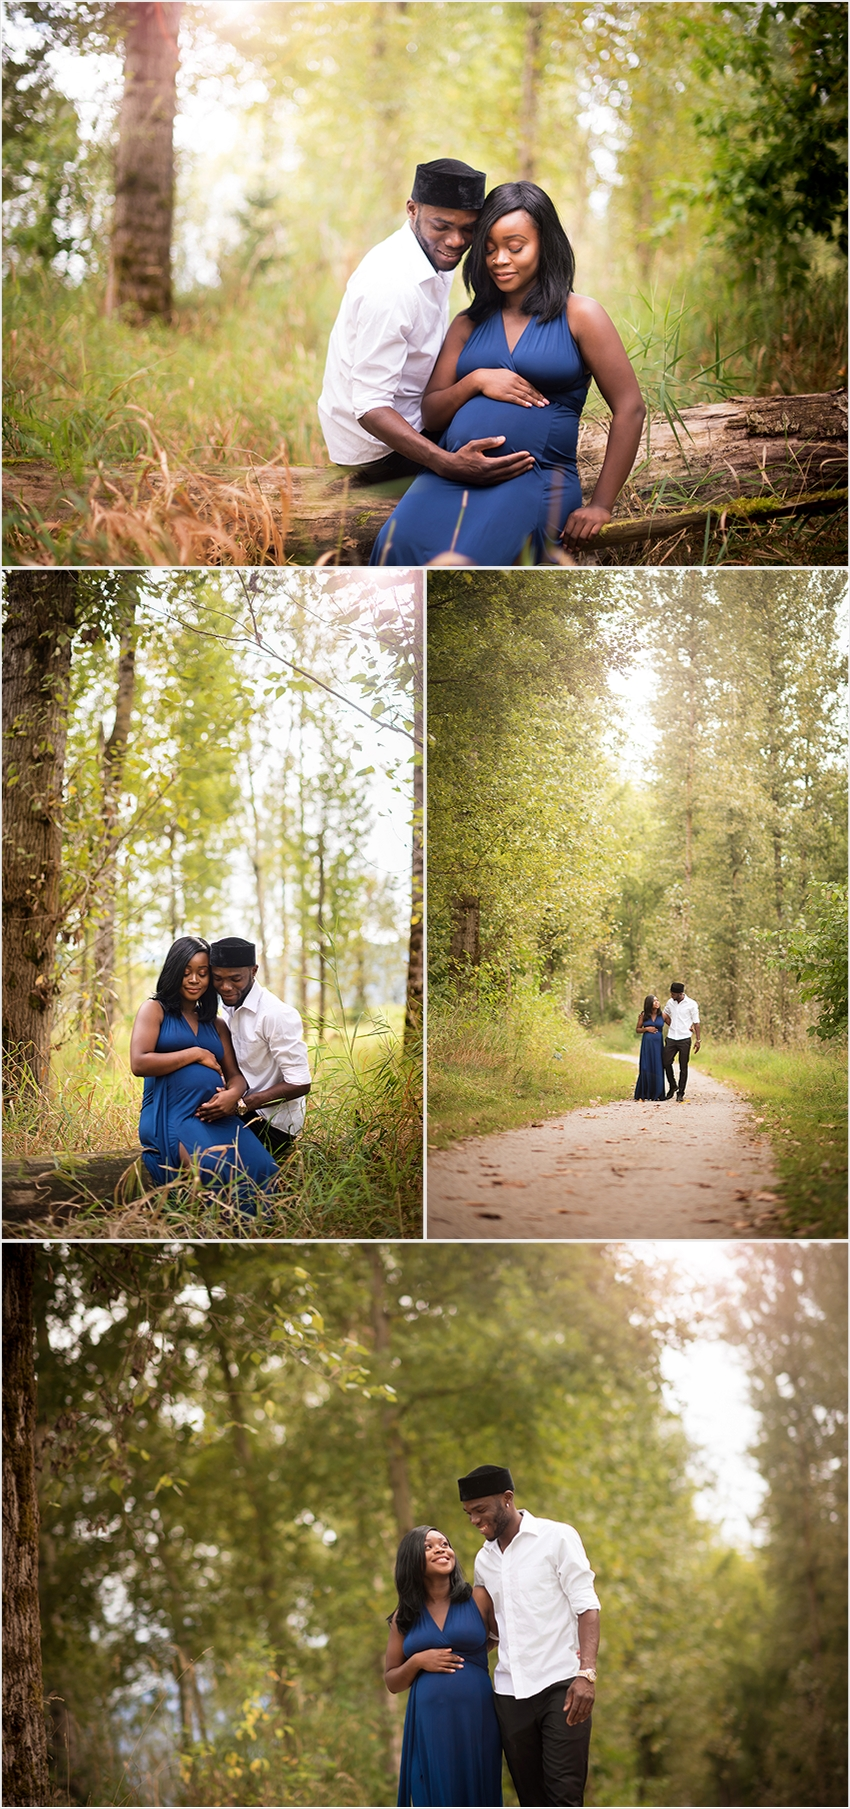 abbotsford-maternity-maternity-photographer-004-side-4